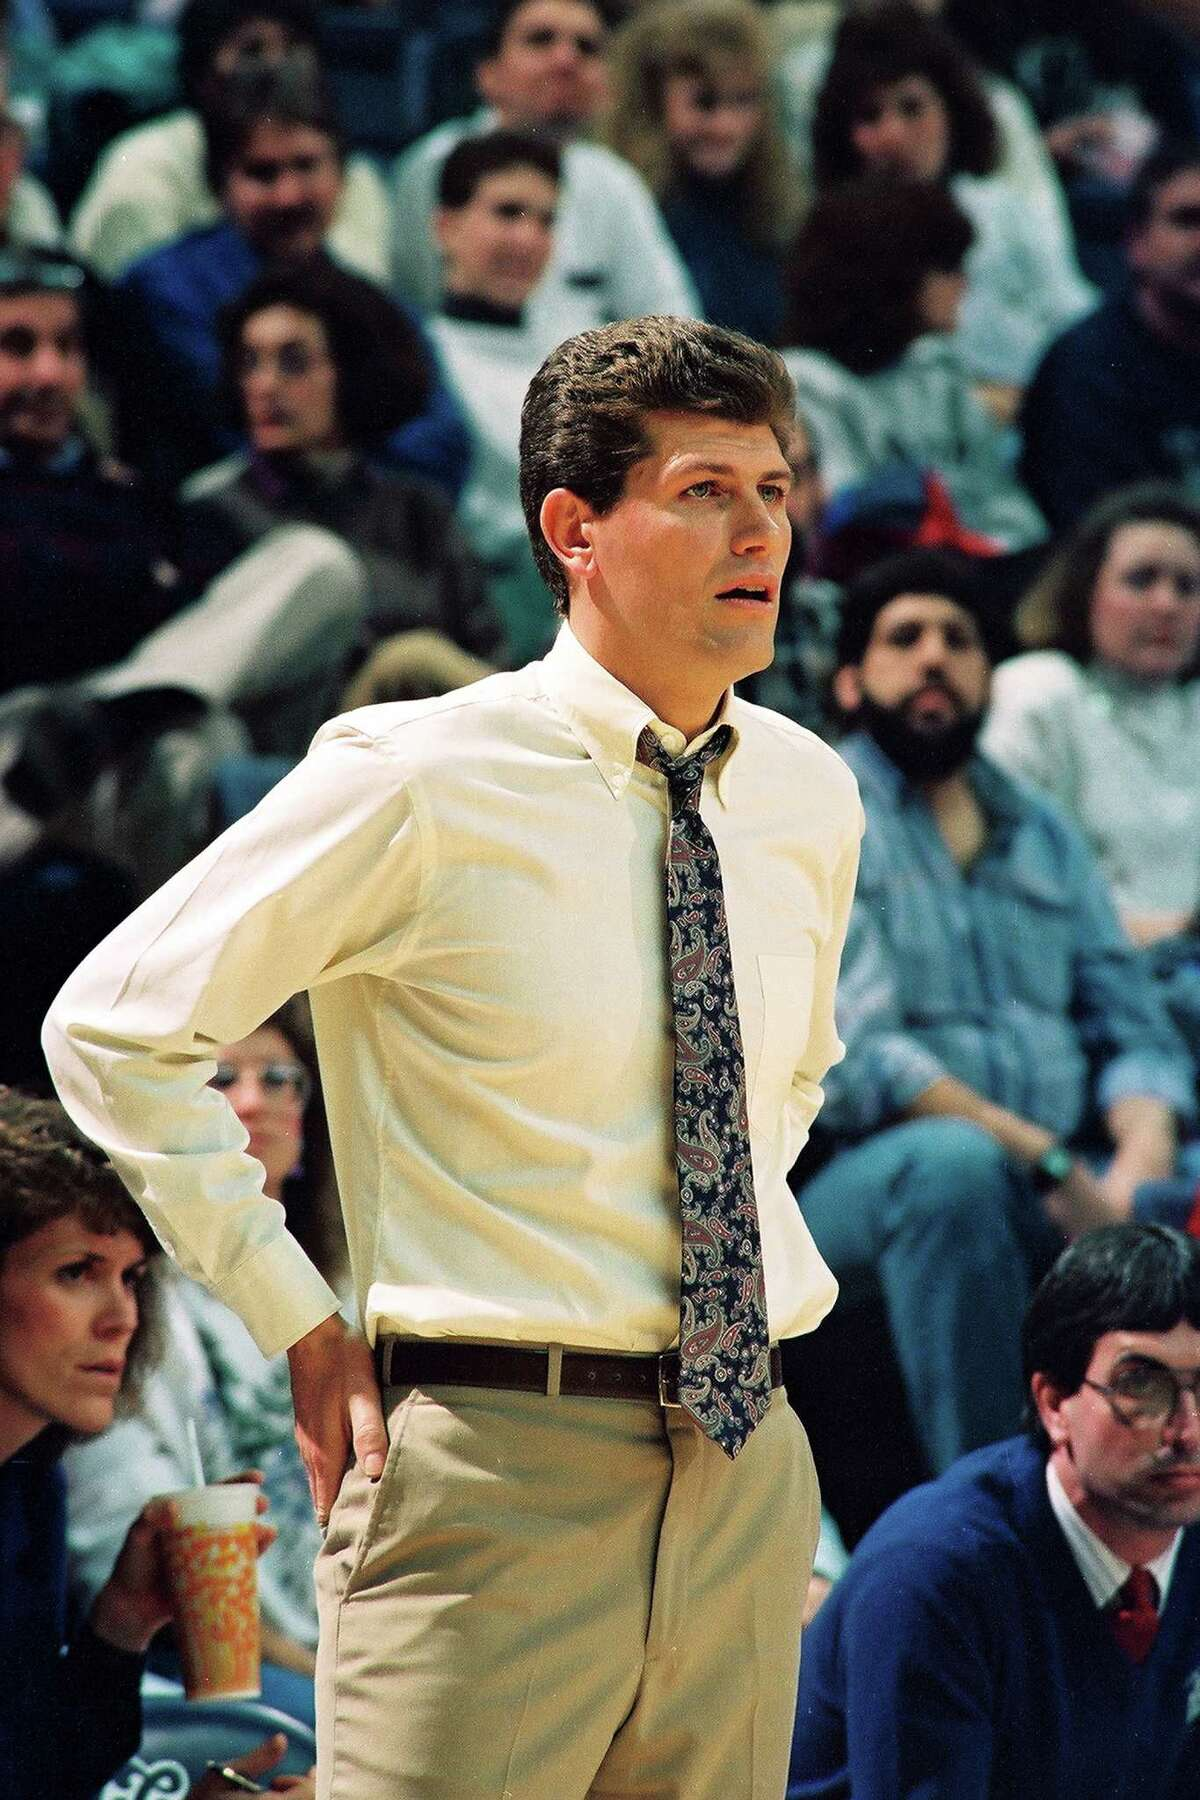 Italian-born American basketball coach Geno Auriemma of the University of Connecticut watches the action during a game in Gampel Pavilion, Storrs, Connecticut, 1991. (Photo by Bob Stowell/Getty Images)